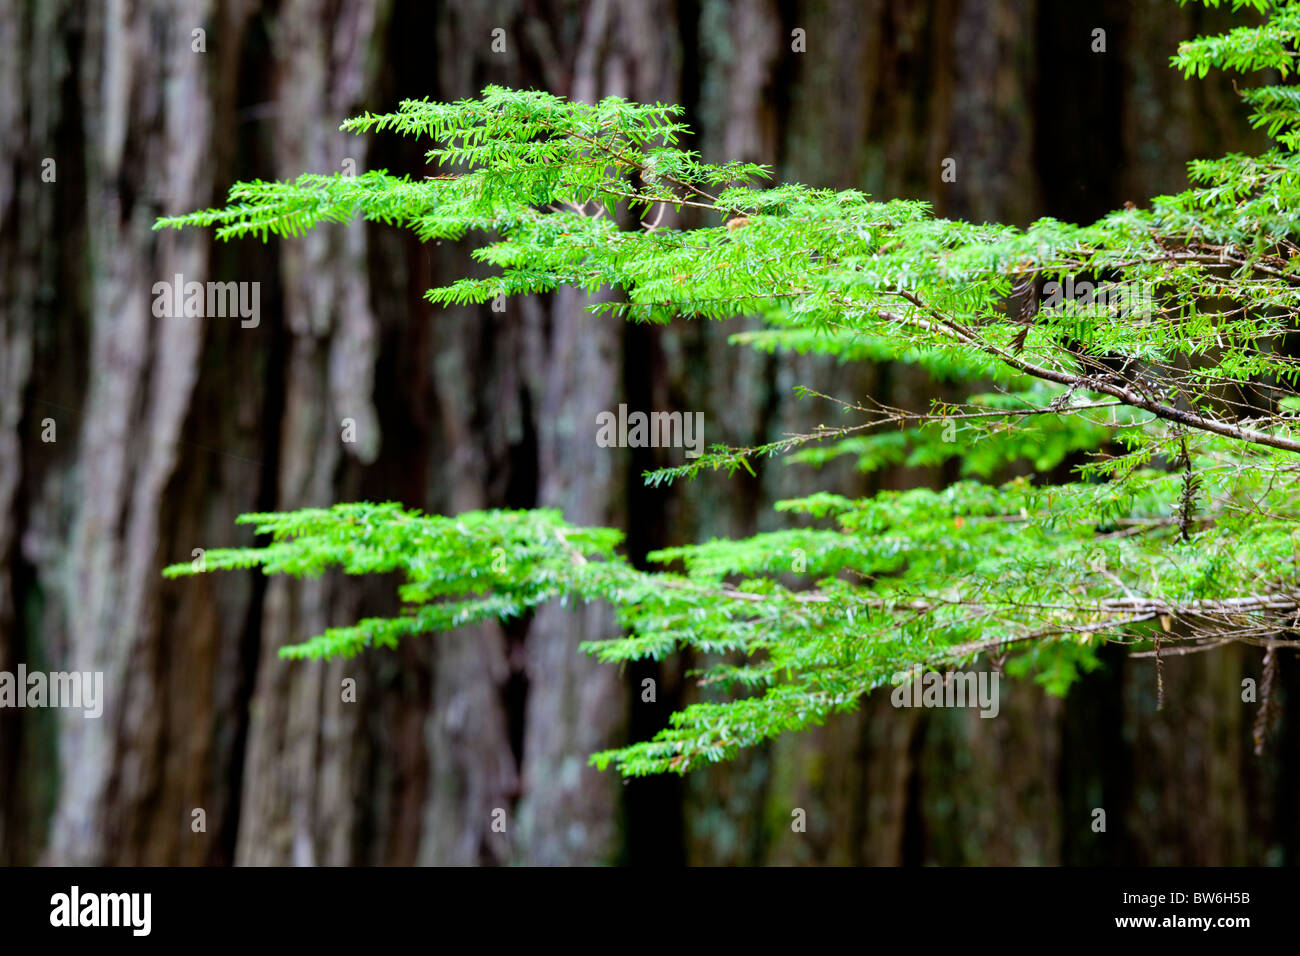 Branch and bark - Stock Image